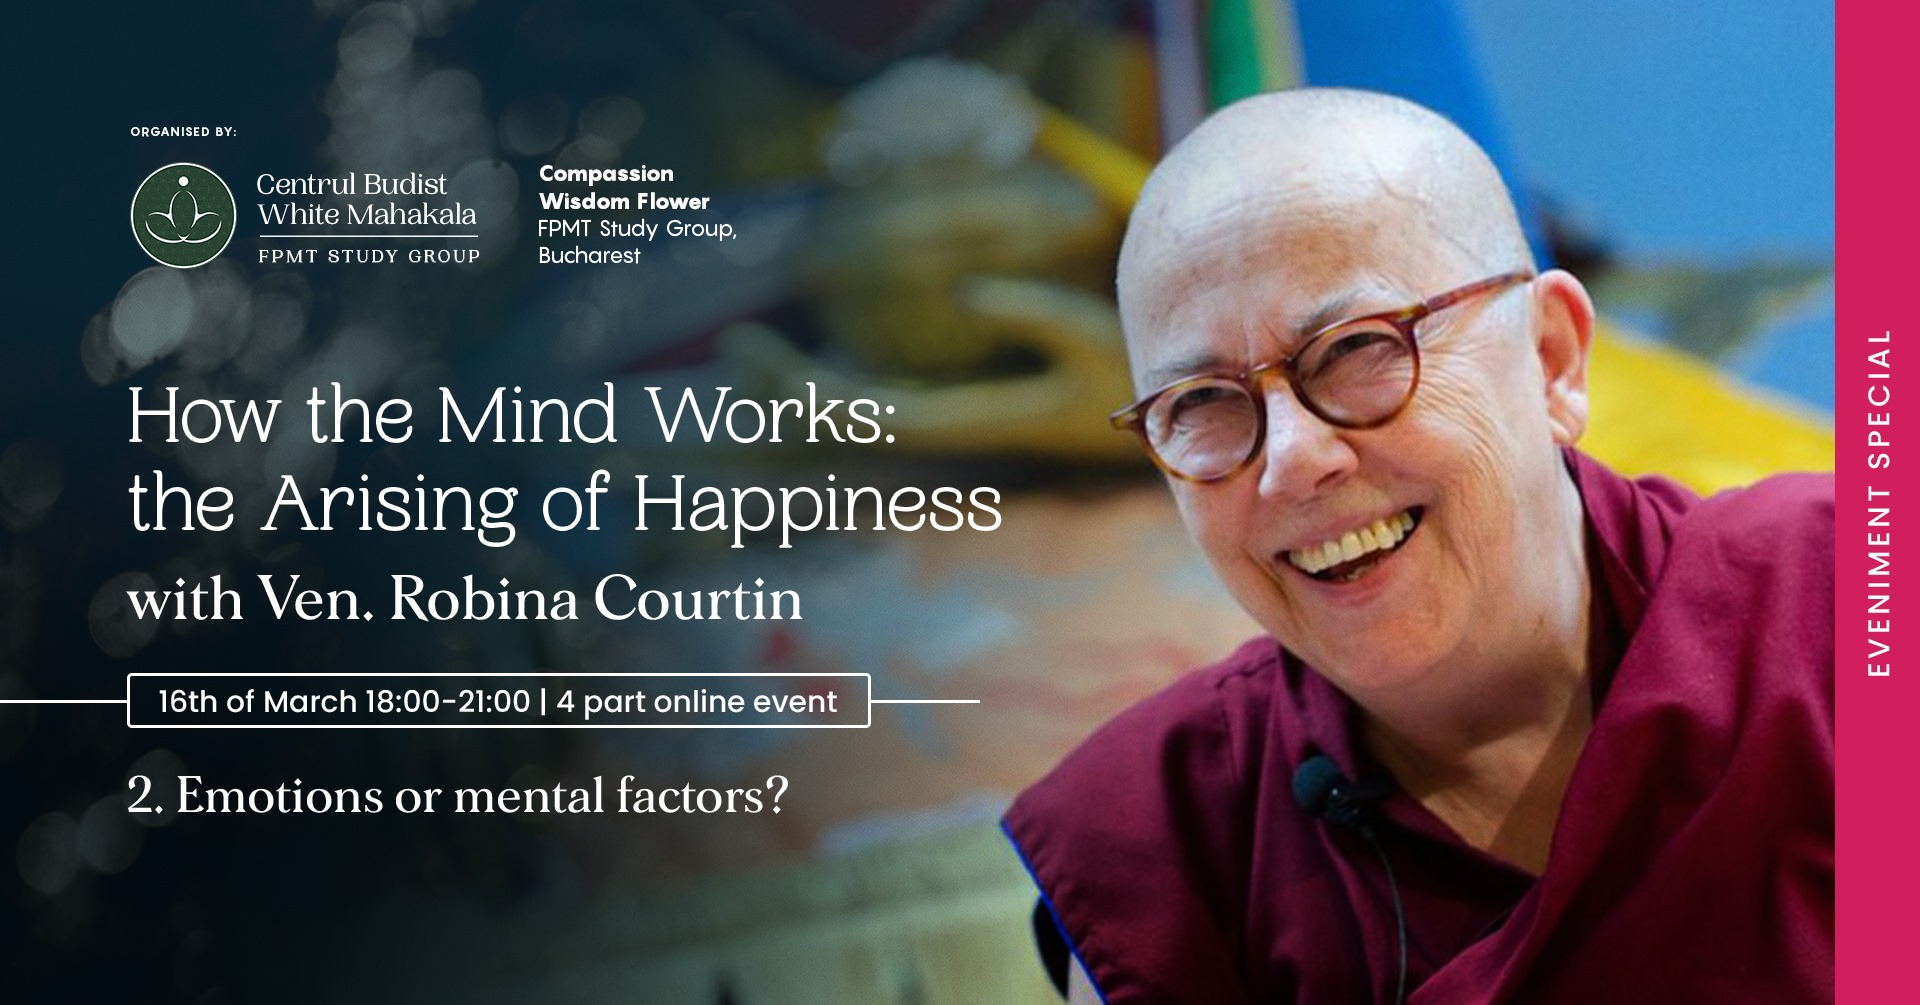 EMOTIONS OR MENTAL FACTORS?  with Venerable Robina Courtin